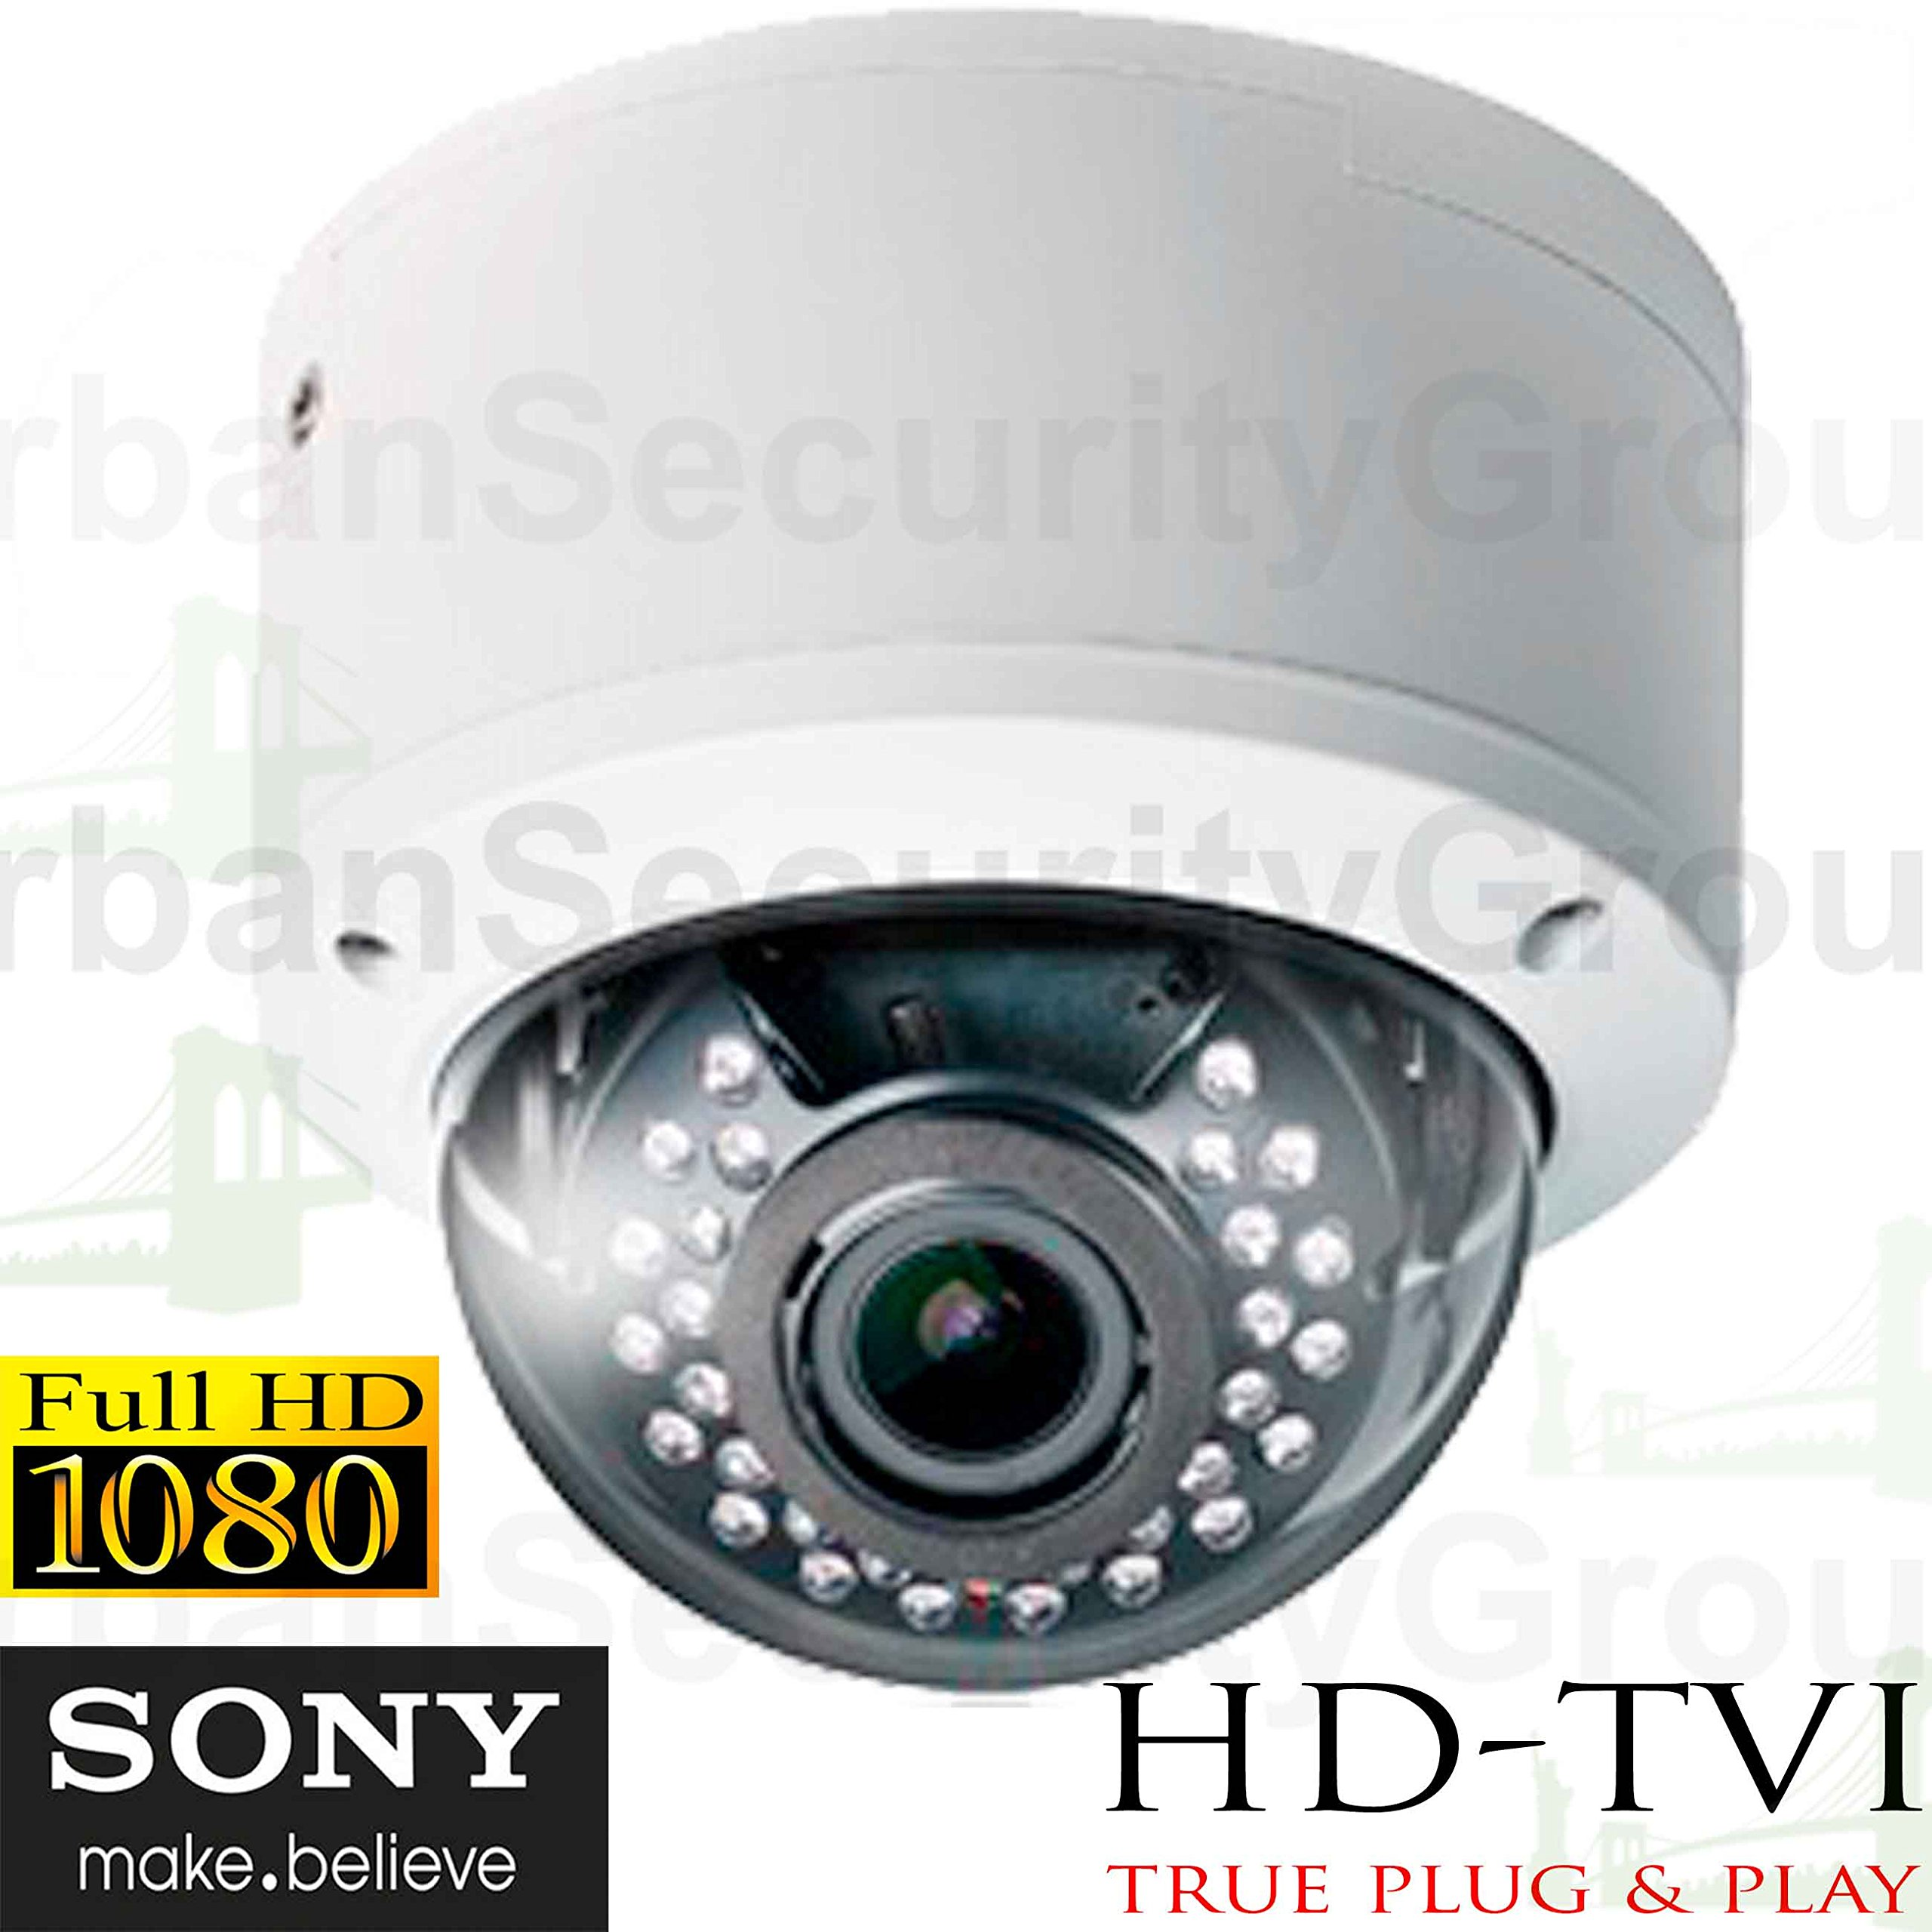 USG Business Grade Sony DSP 1080P 2MP High Definition CCTV Dome Security Camera With Deep Base: 1920x1080 HD Resolution, 2.8-12mm Vari-Focal Lens, 30x IR LEDs : TVI, CVI, AHD and Analog Format